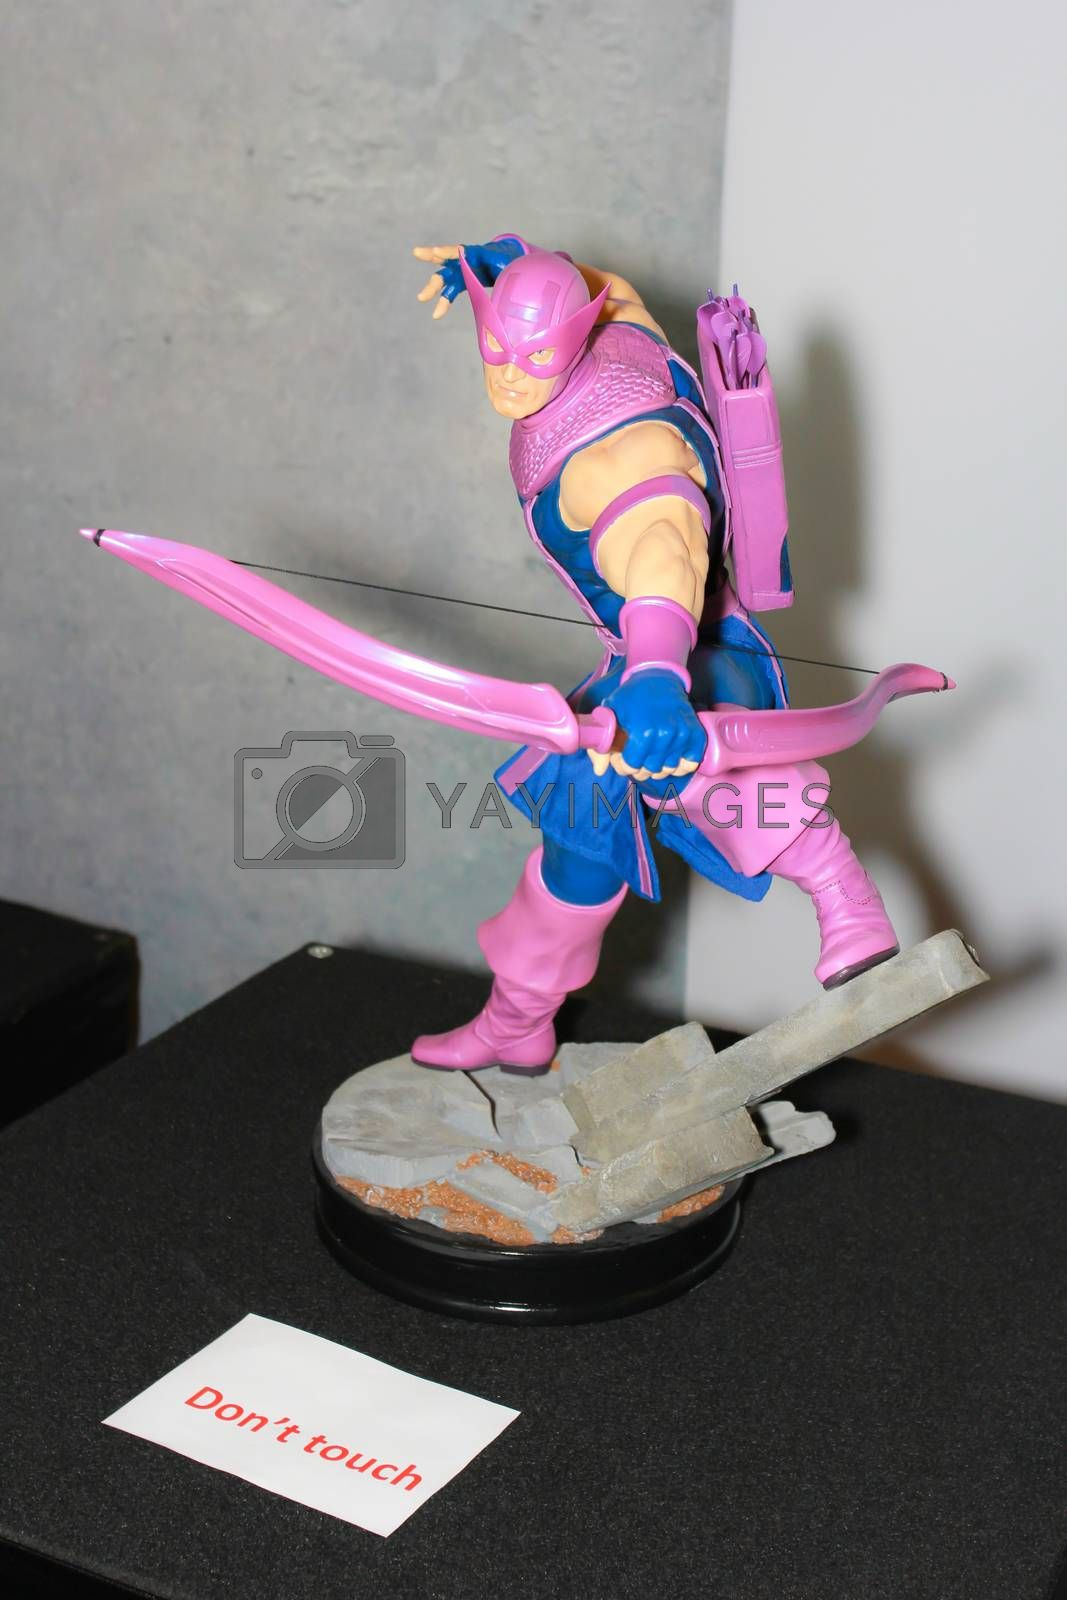 Royalty free image of A model of the character Hawkeye from the movies and comics 2 by redthirteen